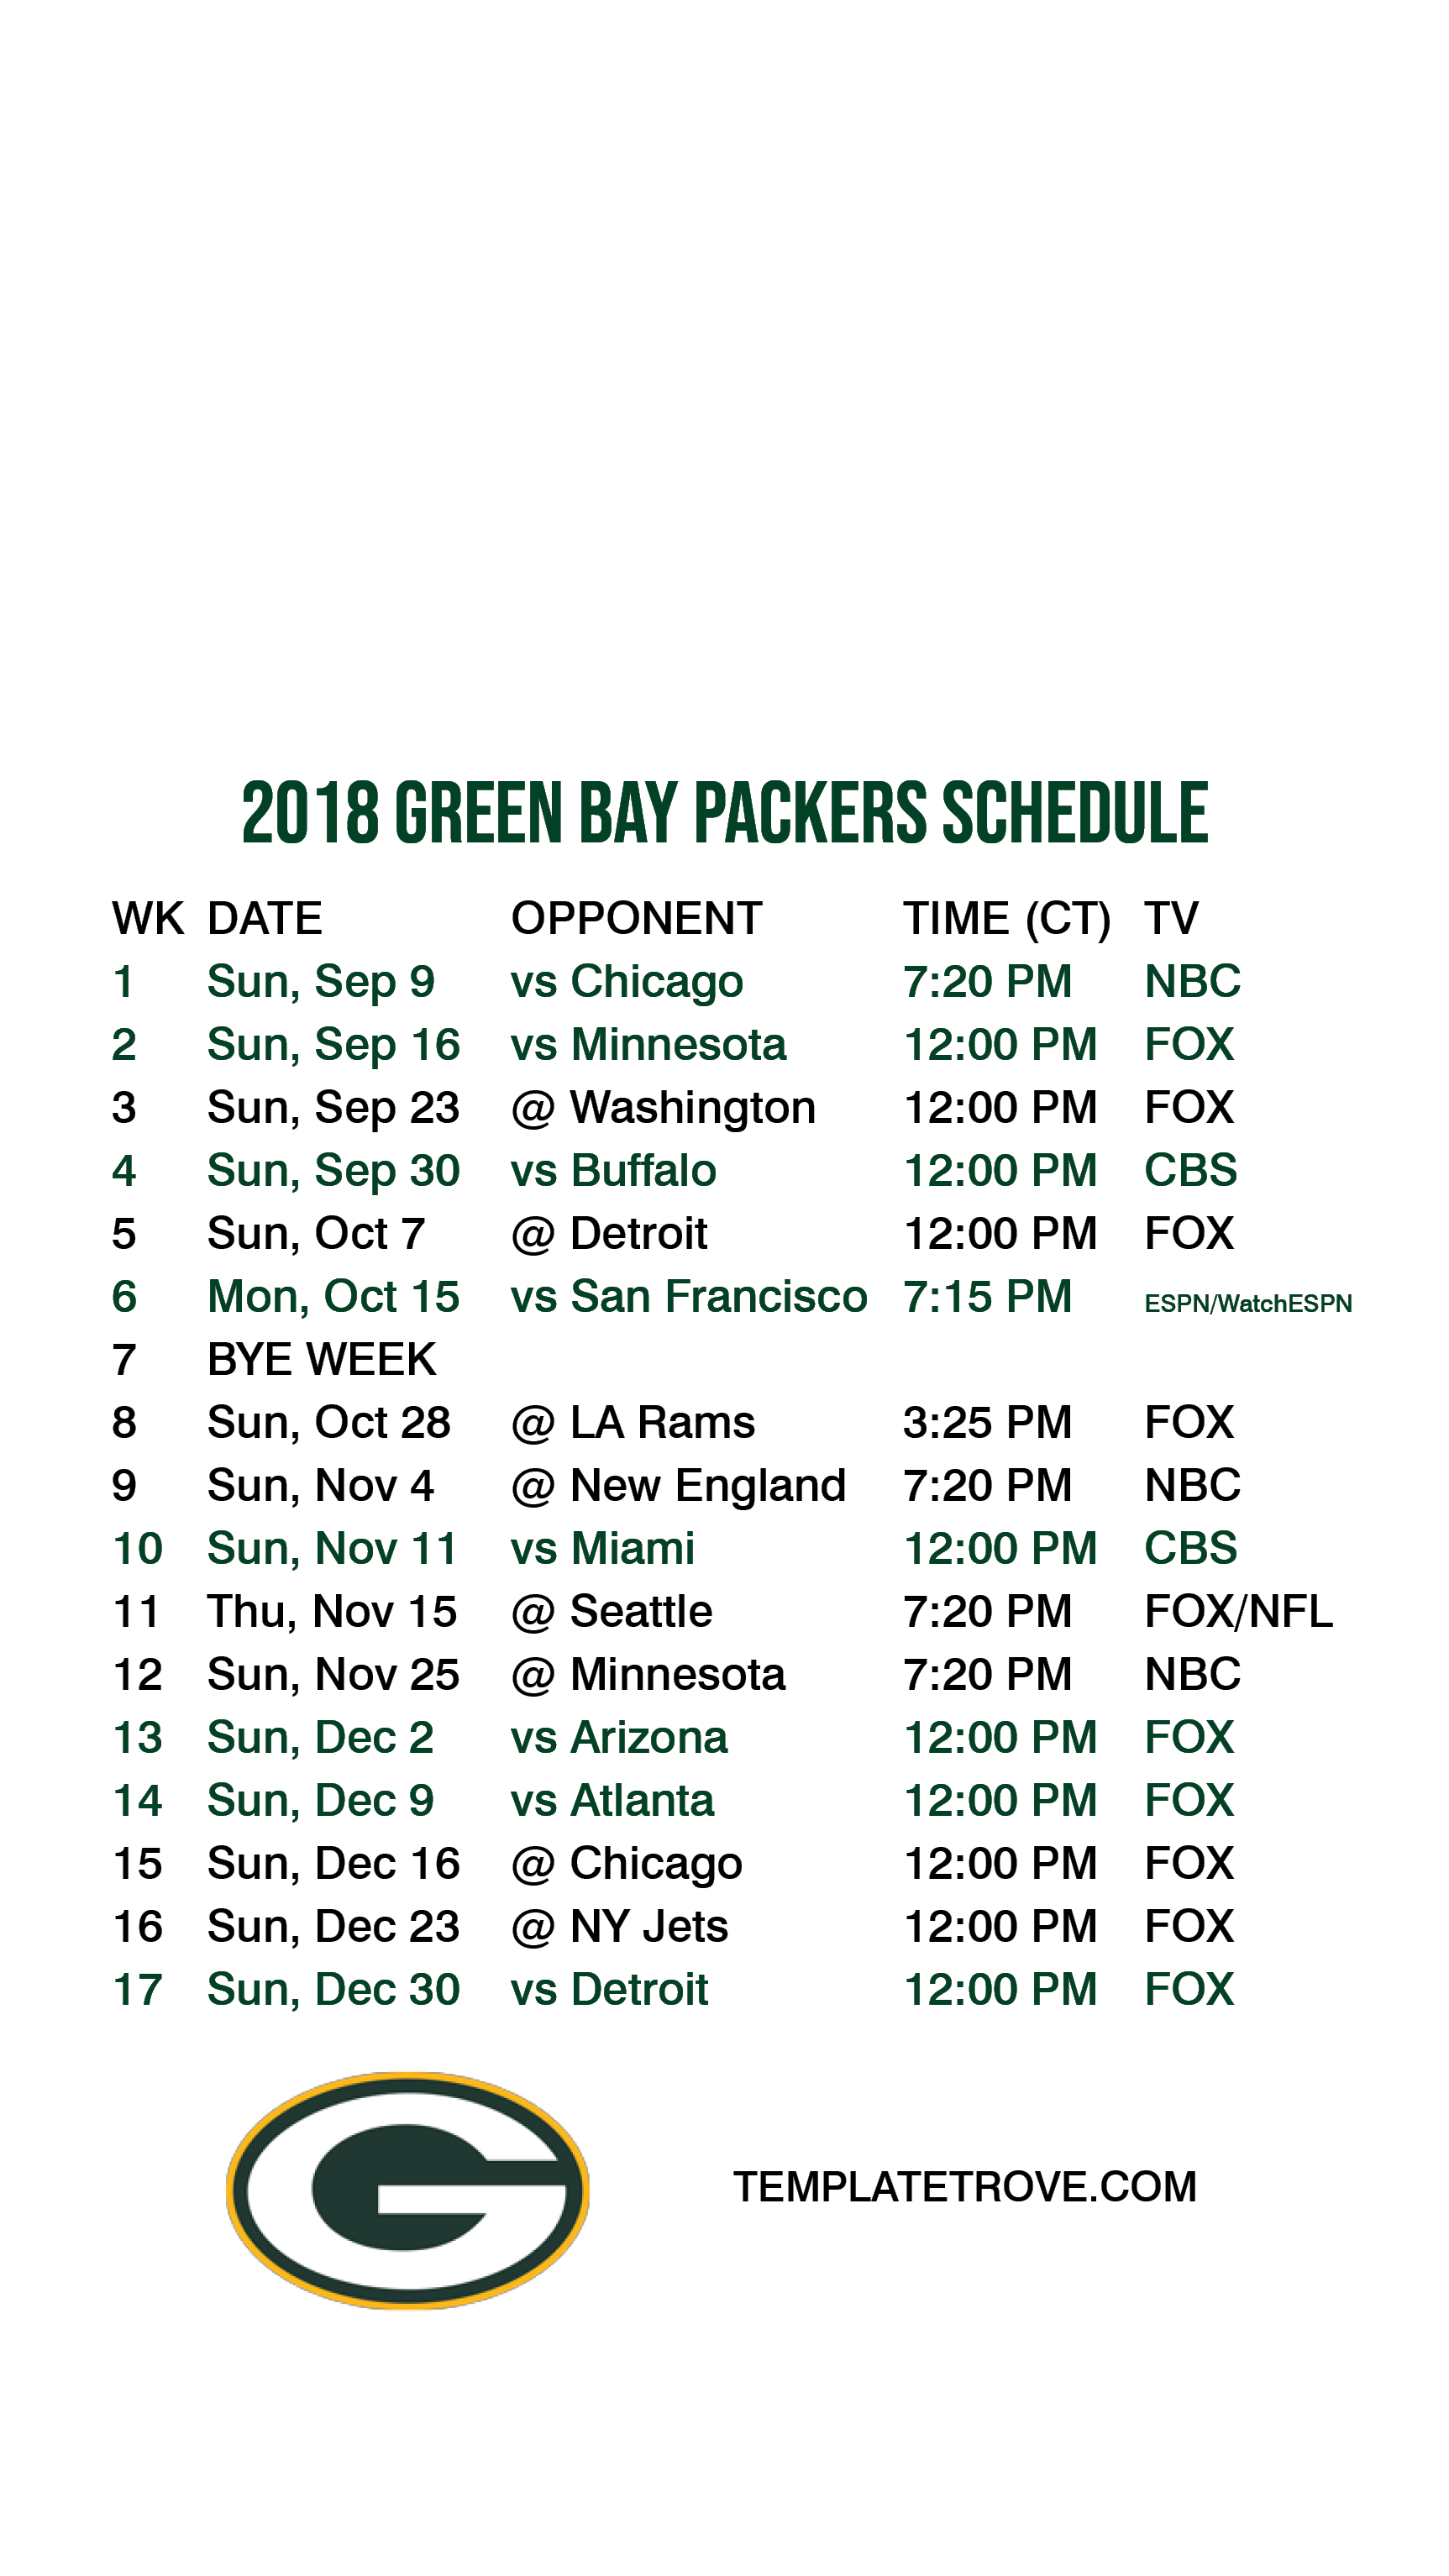 Soft image inside green bay packers printable schedule